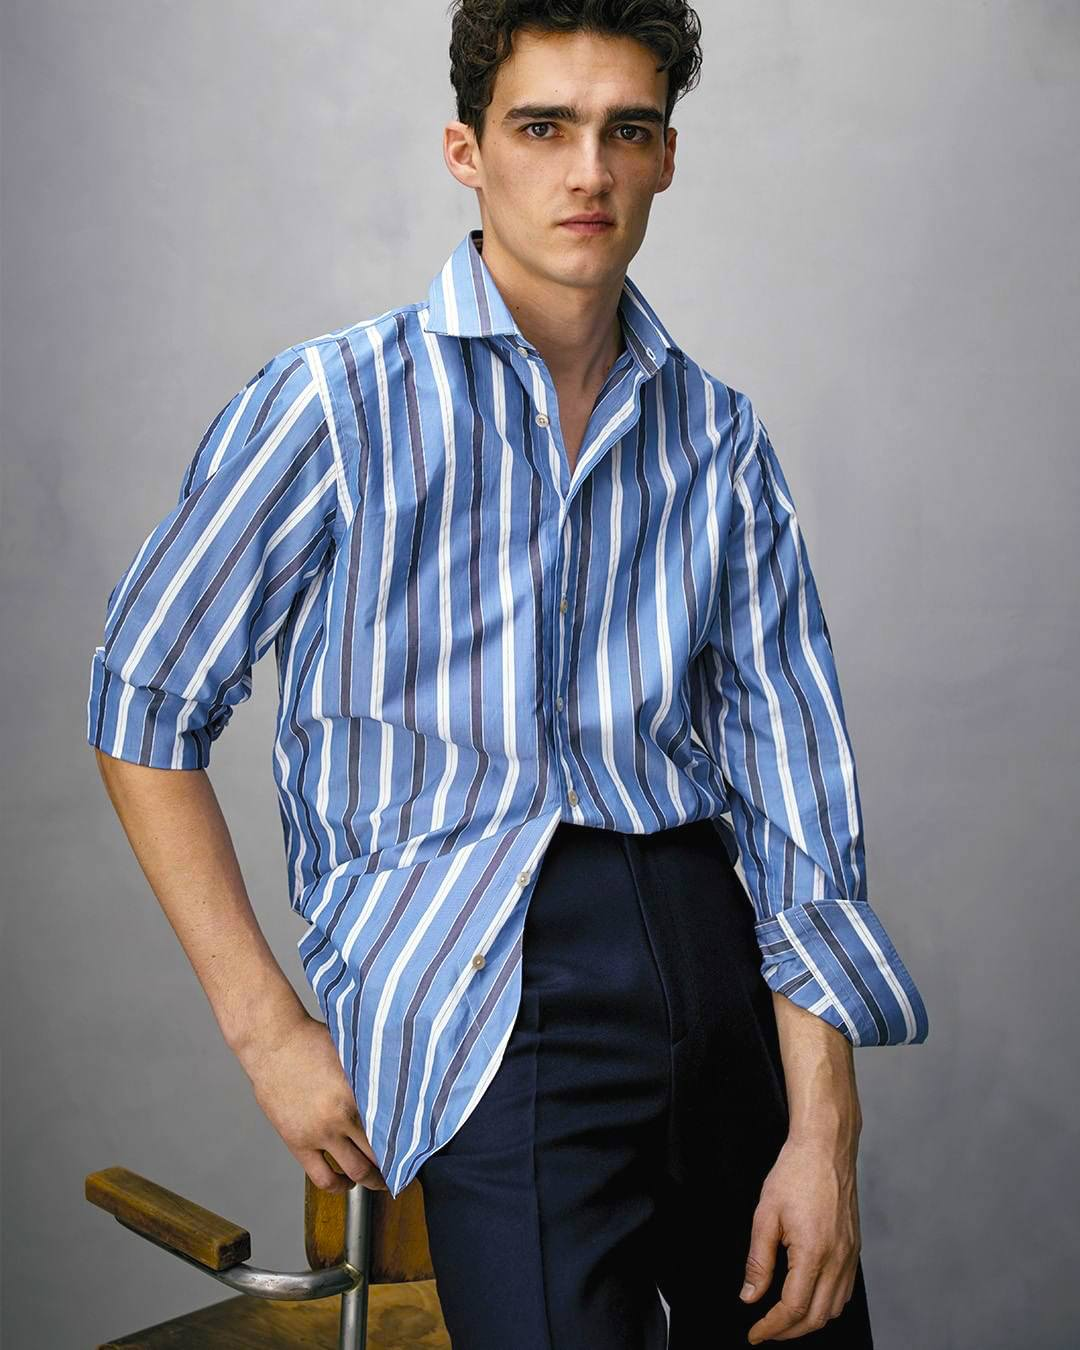 Pink Shirtmaker London the New Collection